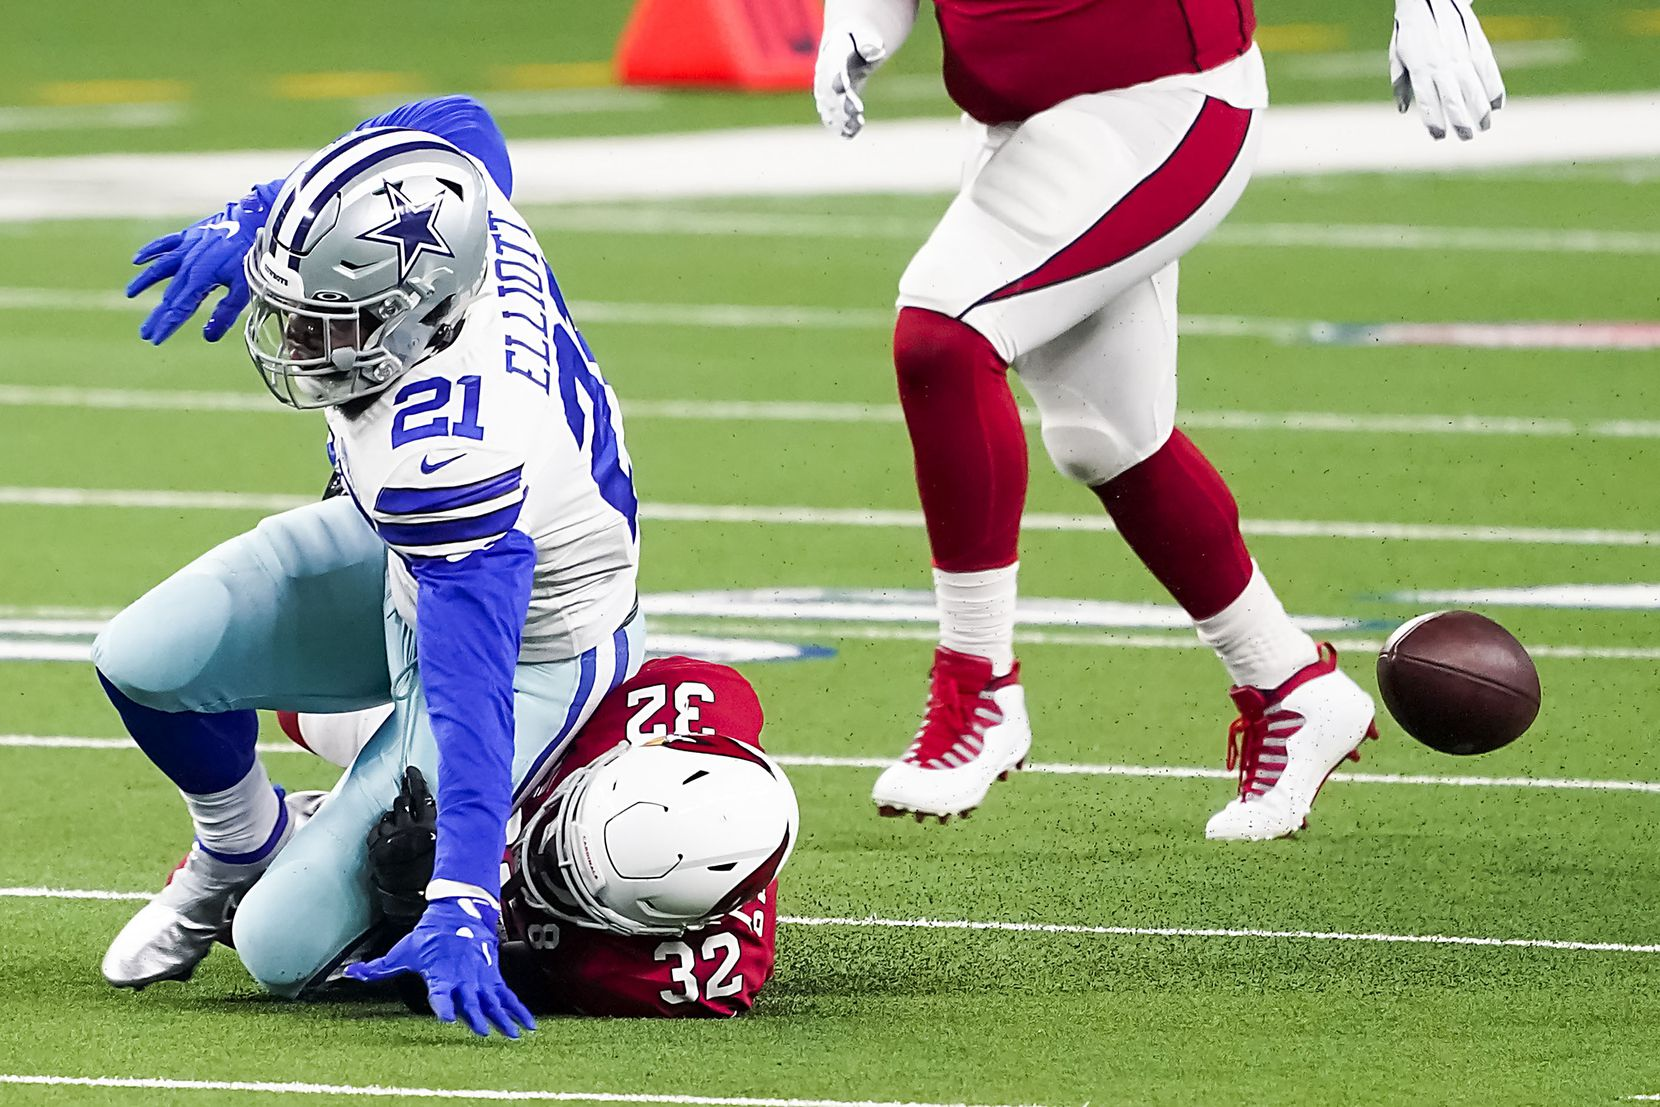 Dallas Cowboys running back Ezekiel Elliott (21) fumbles on a hit from Arizona Cardinals strong safety Budda Baker (32) during the first quarter of an NFL football game at AT&T Stadium on Monday, Oct. 19, 2020, in Arlington. The Cardinals recovered the fumble. (Smiley N. Pool/The Dallas Morning News)